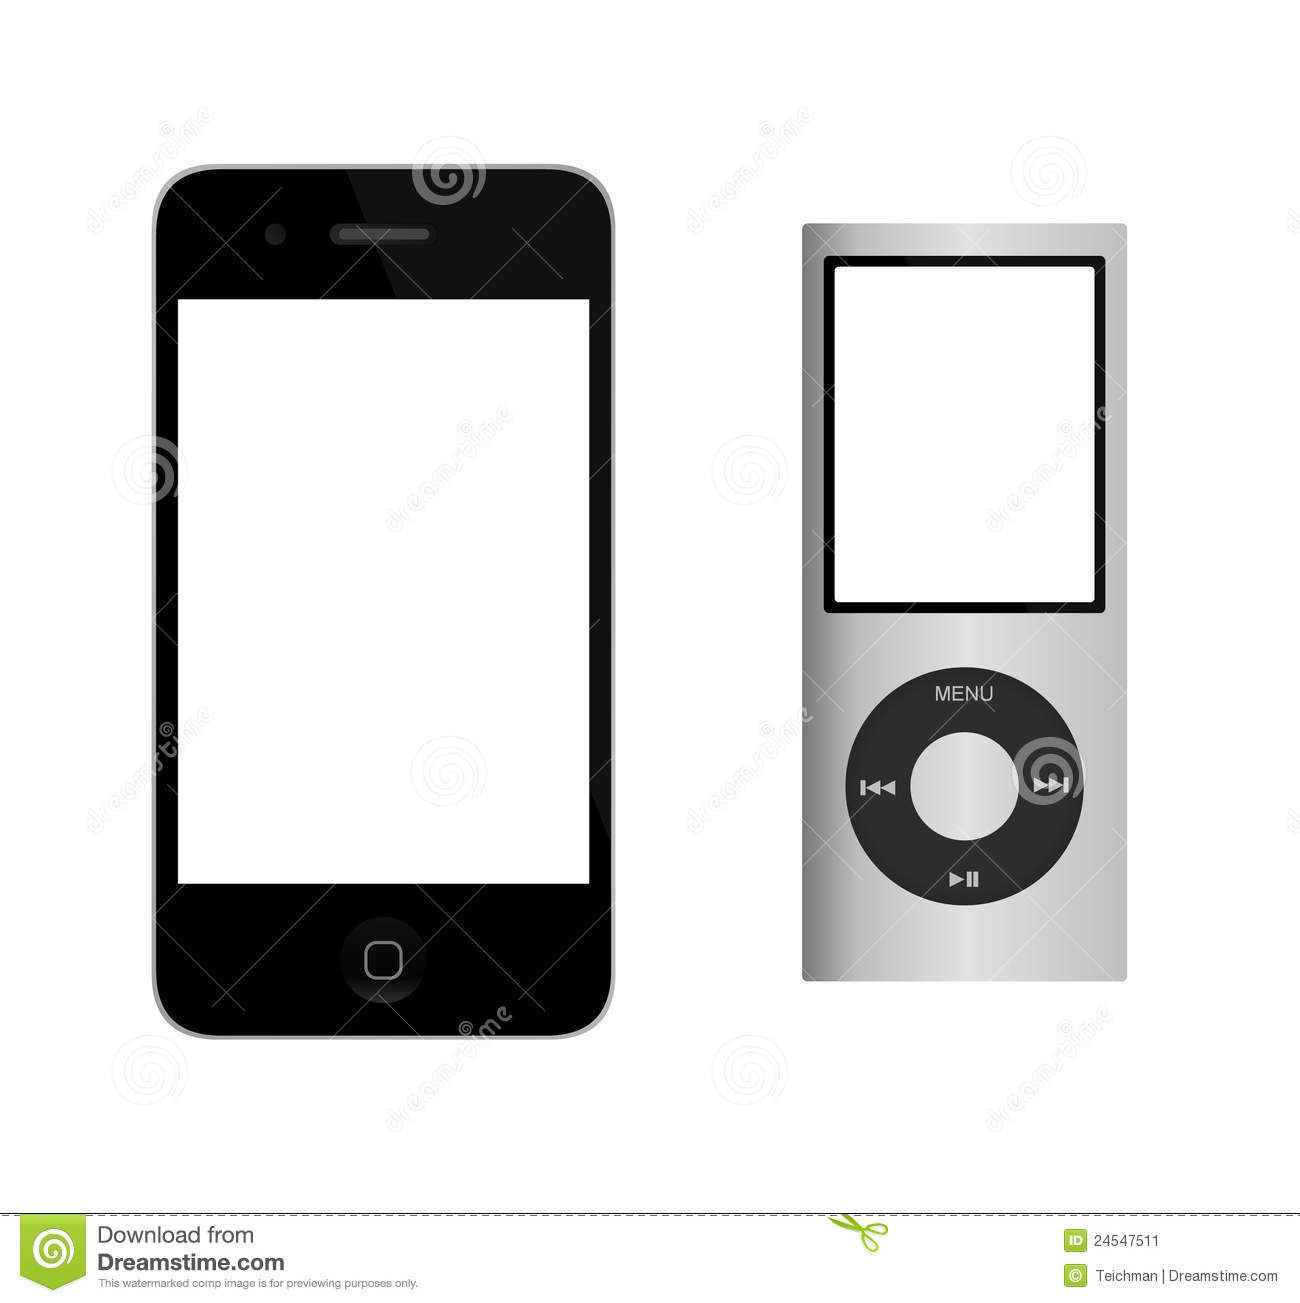 IPhone et iPod